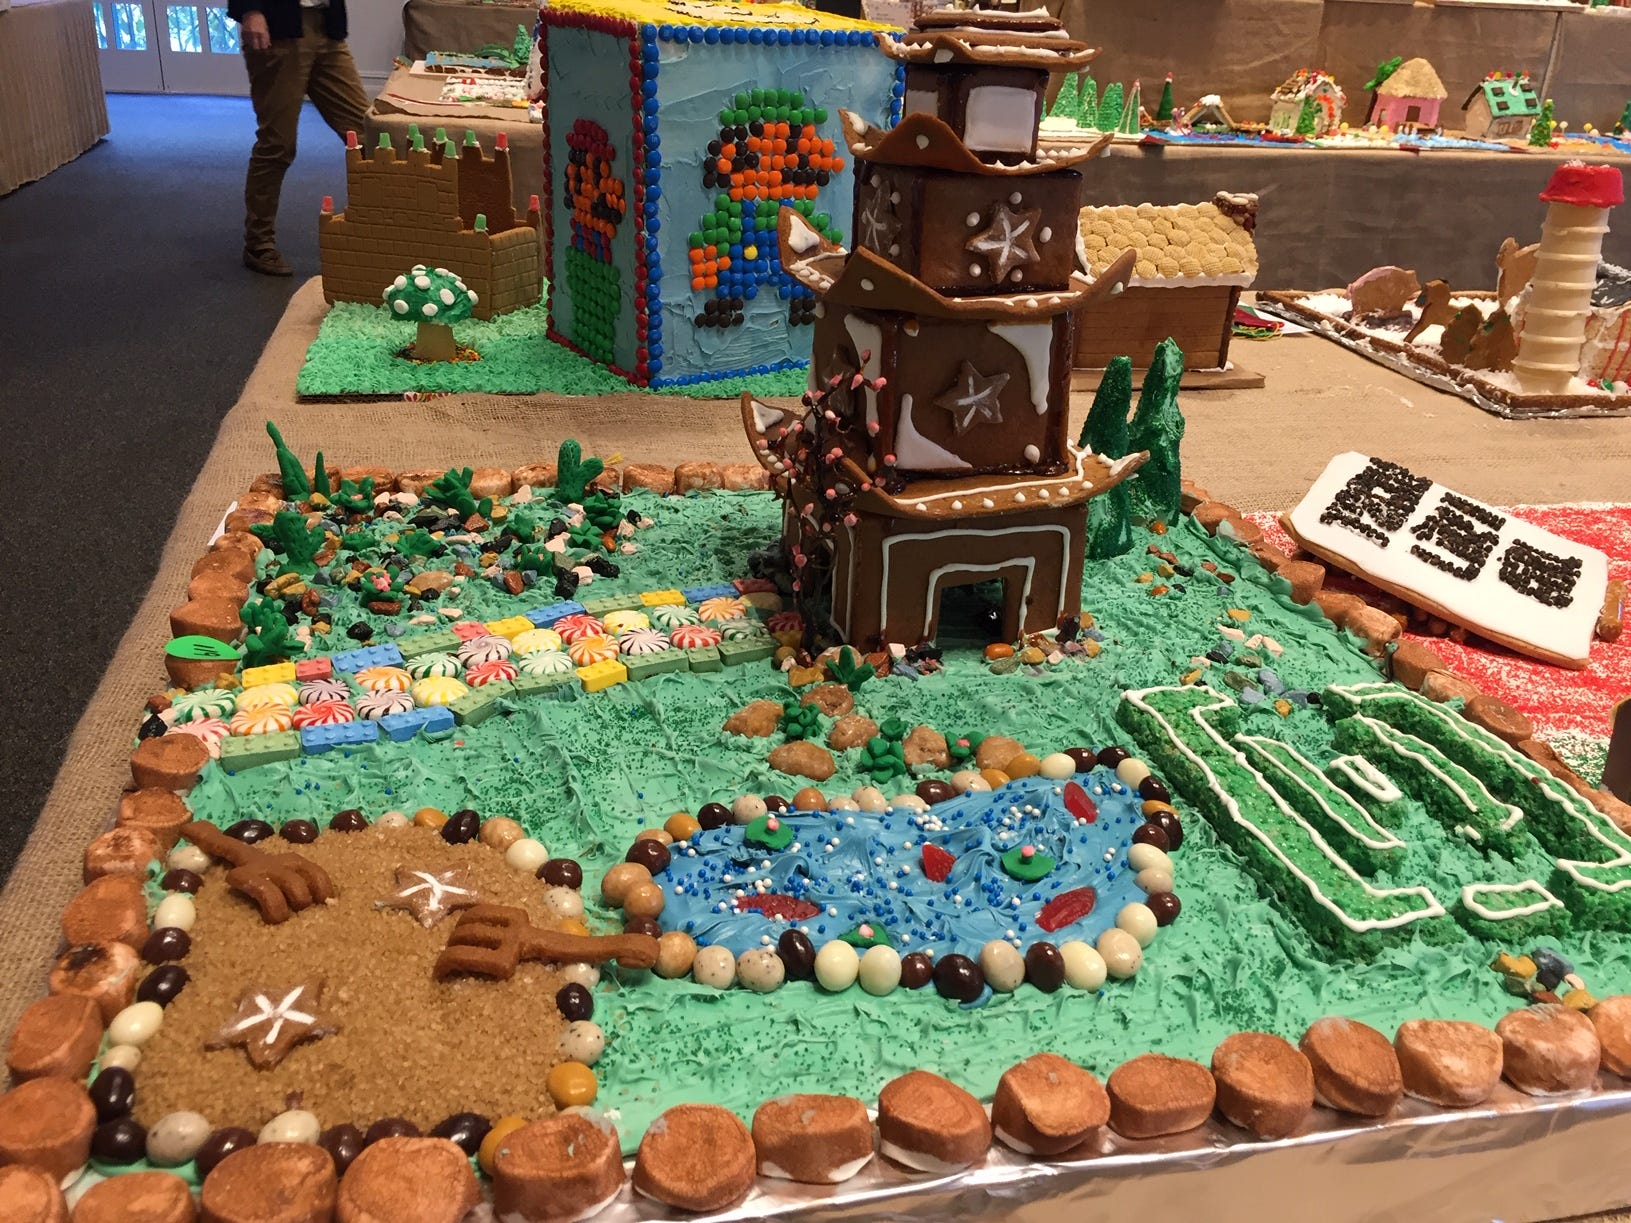 """Pagoda""  by Jennifer LaKind, Amy Kriegsman, Brandon Nereny and Jason Kriegsman of Randolph at the 2018 Gingerbread Wonderland at the Frelinghuysen Arboretum. Family category."